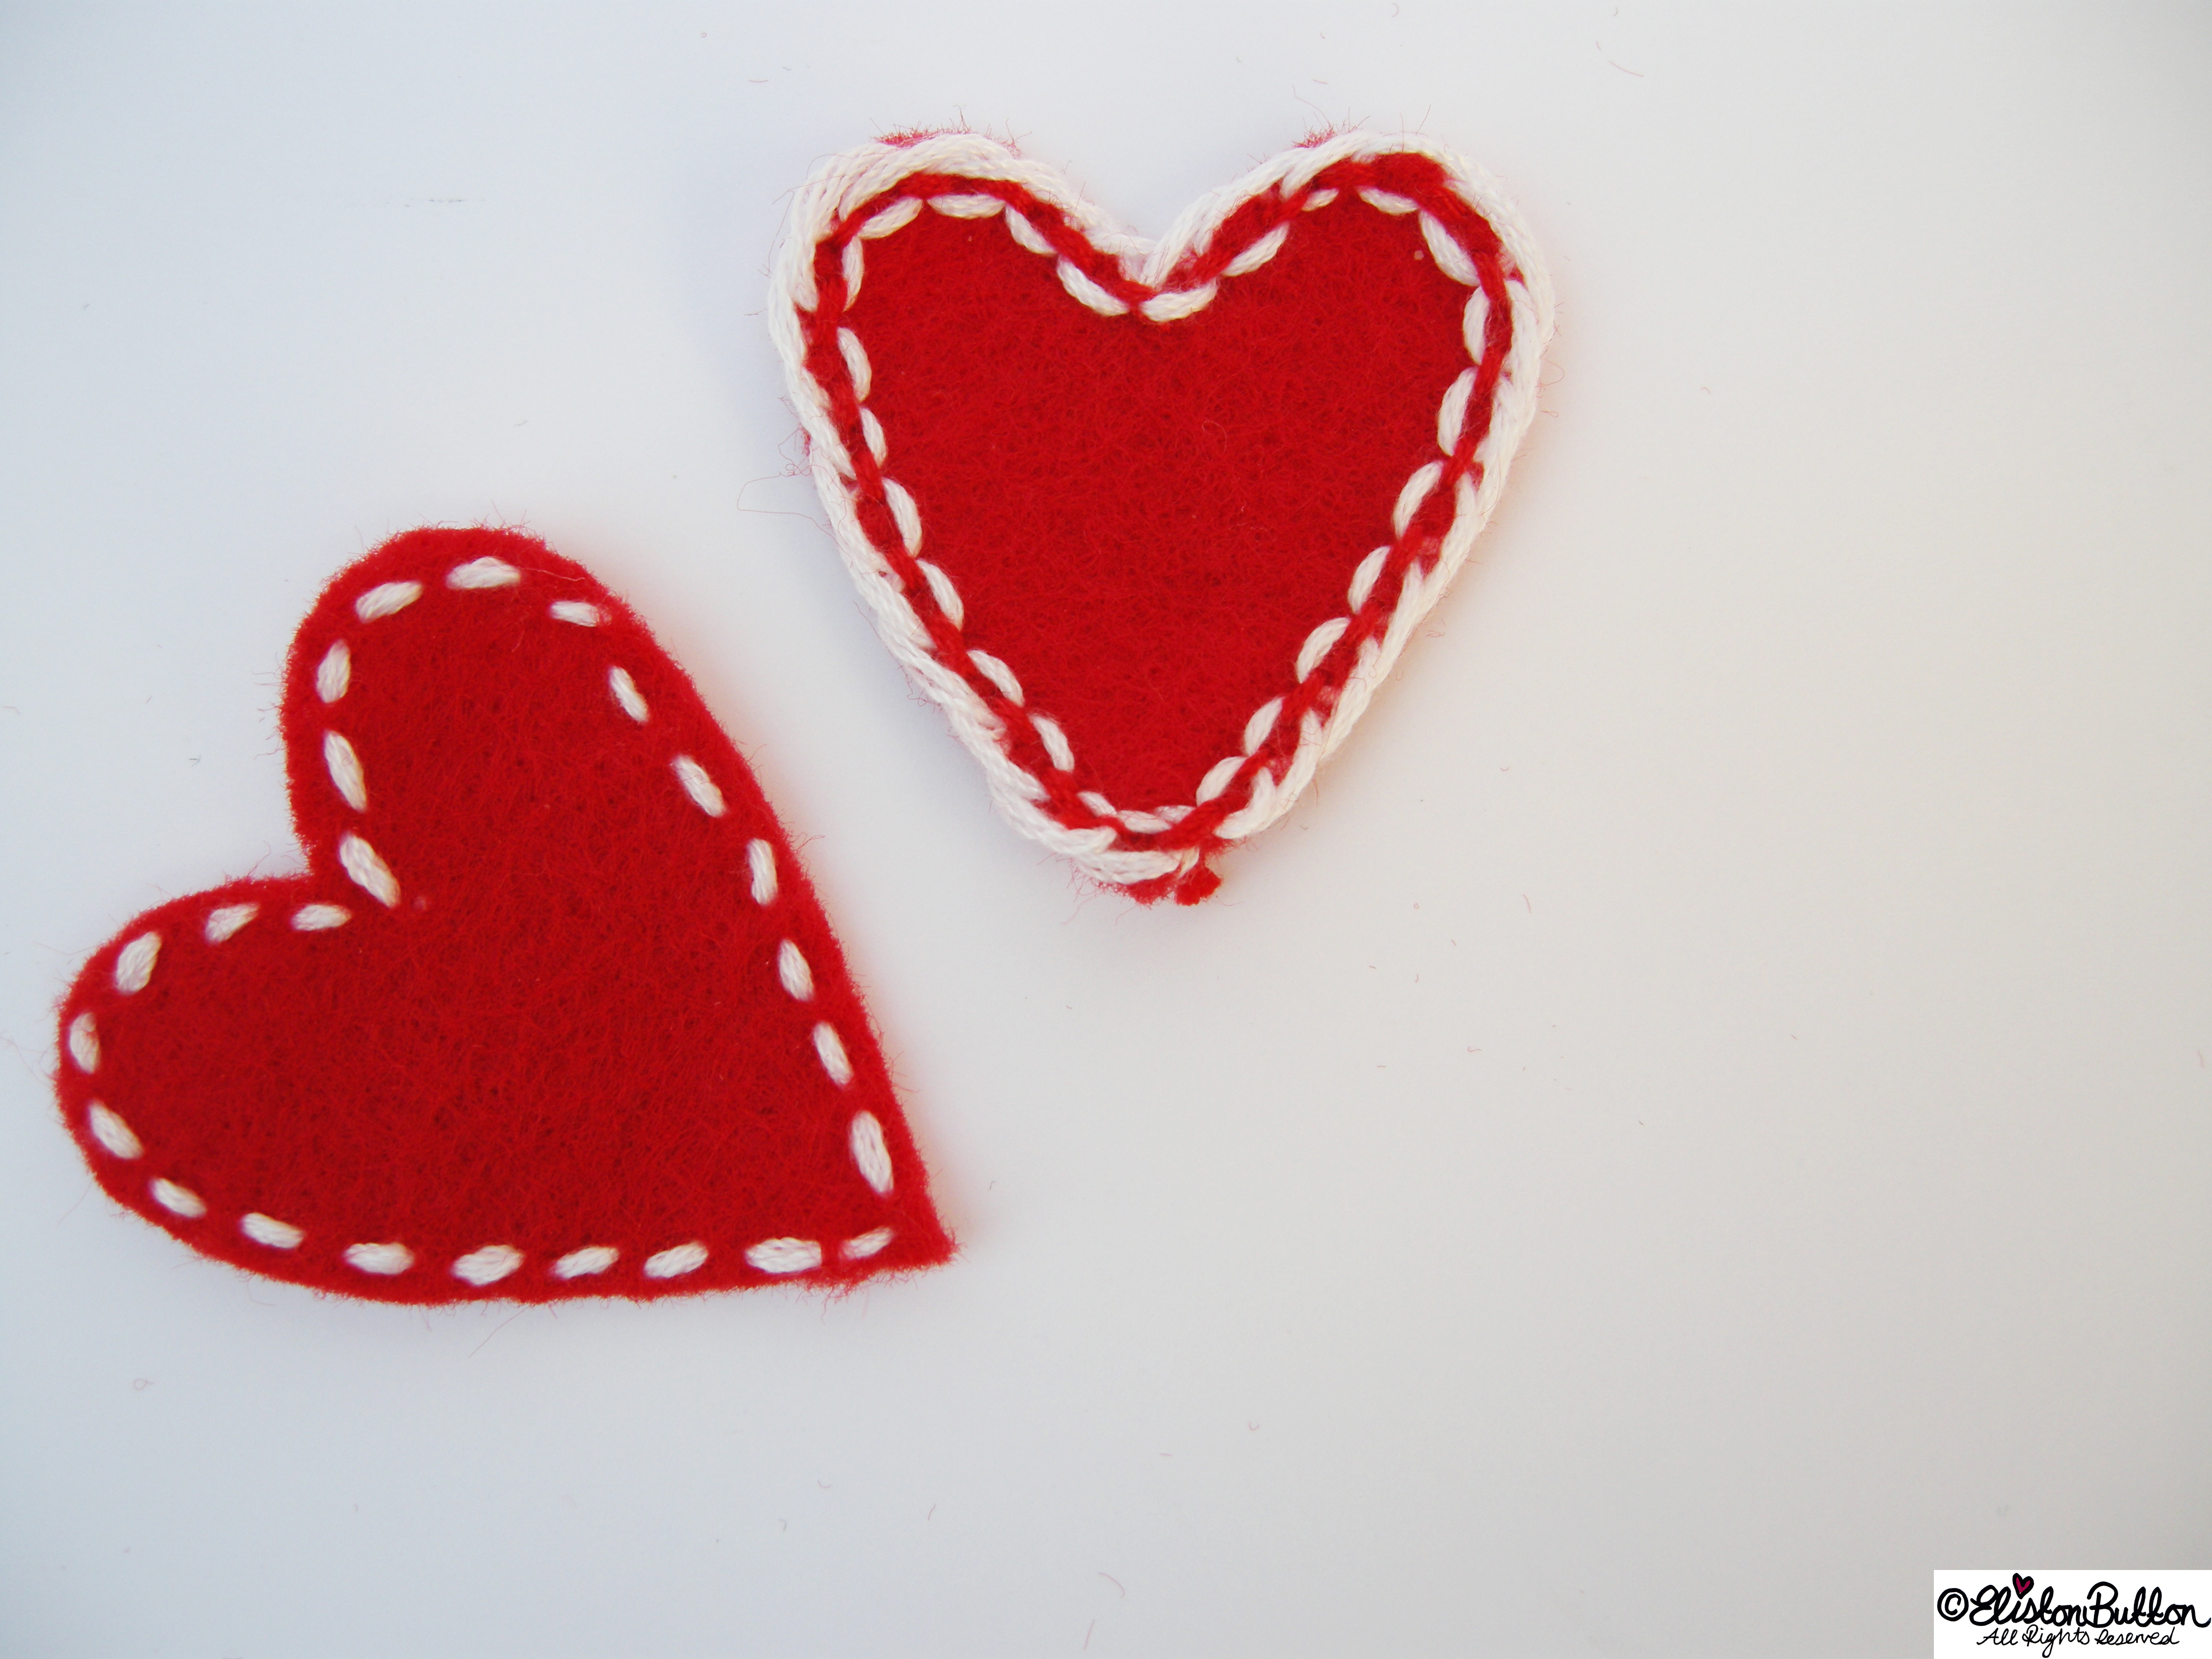 Hand Embroidered Felt Hearts - Workspace Wednesday - I Give You My Heart at www.elistonbutton.com - Eliston Button - That Crafty Kid – Art, Design, Craft & Adventure.